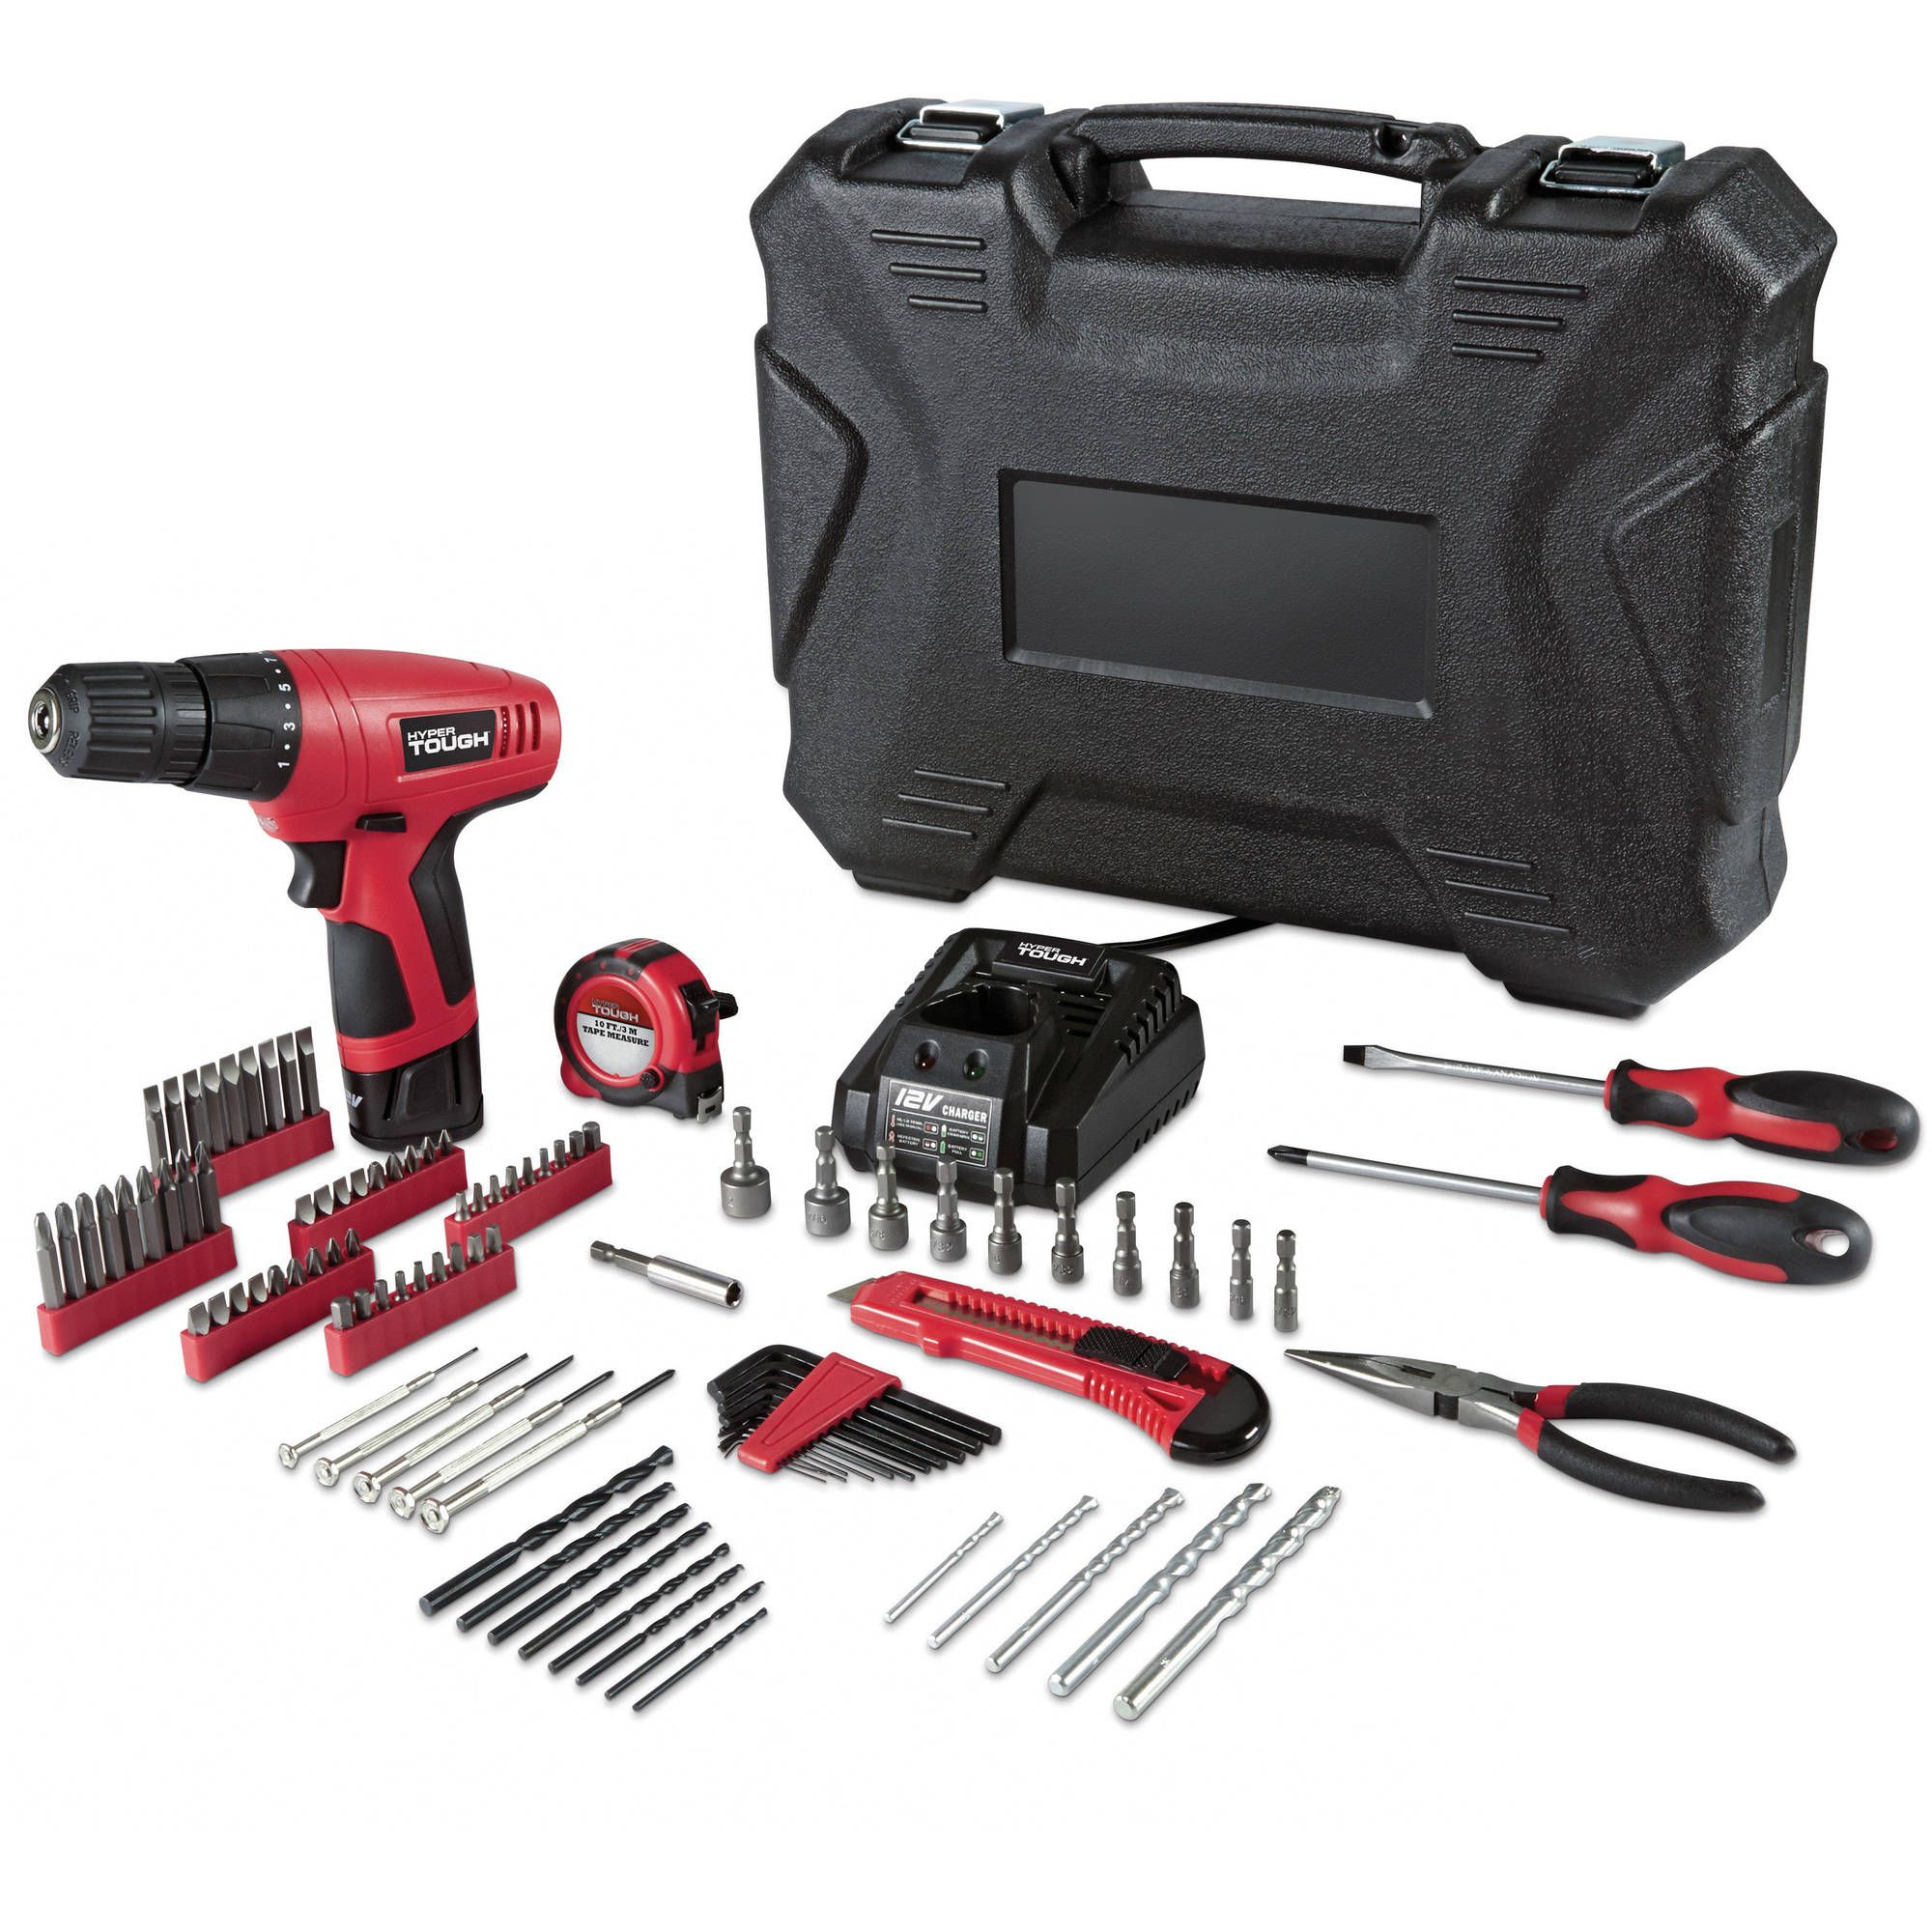 Hyper Tough 5241 41 12V Cordless Drill with 100 Piece Project Kit